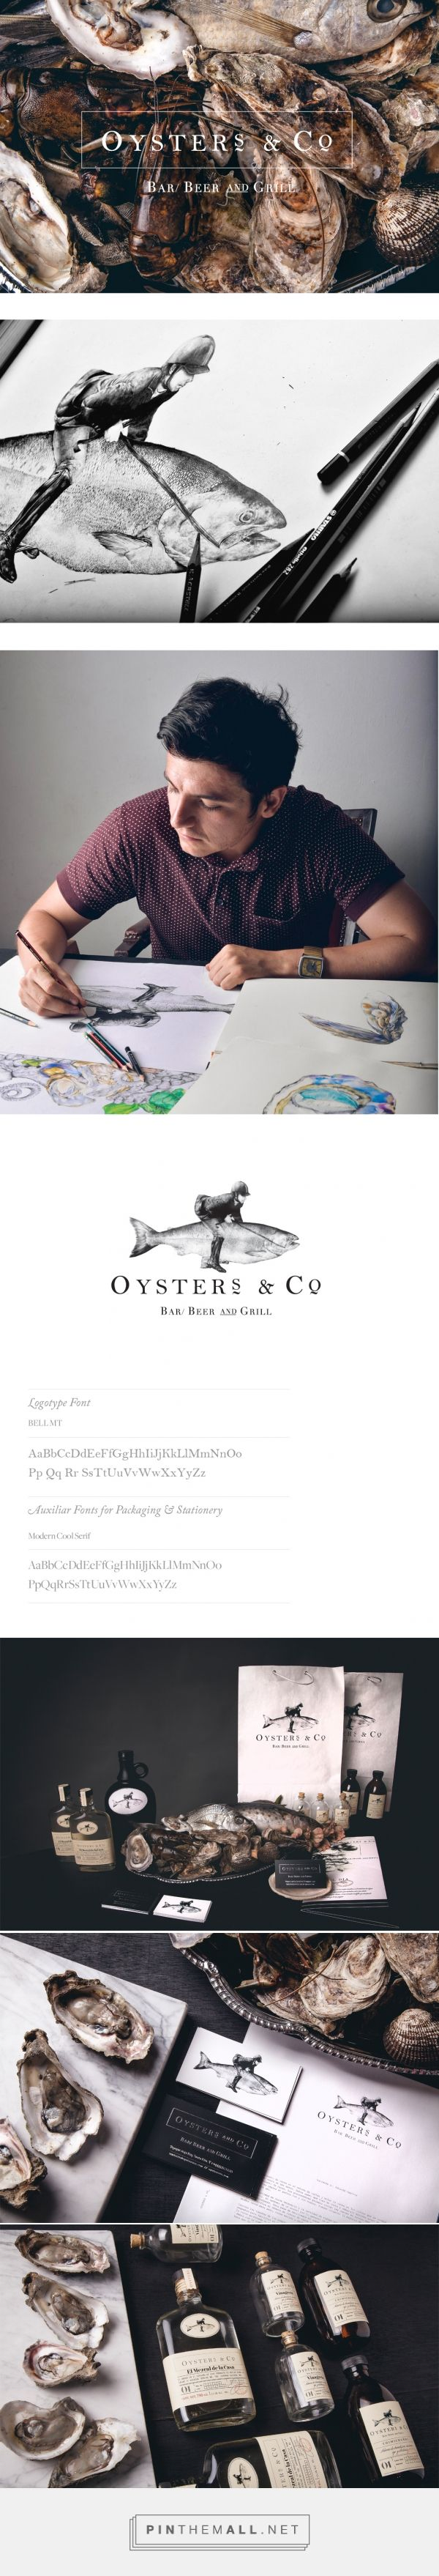 Oyster´s & Co. on Behance by Daniel Babara curated by Packaging Diva PD. Corporate identity project for an oyster´bar, covering art direction, photography, brand design, packaging & web.